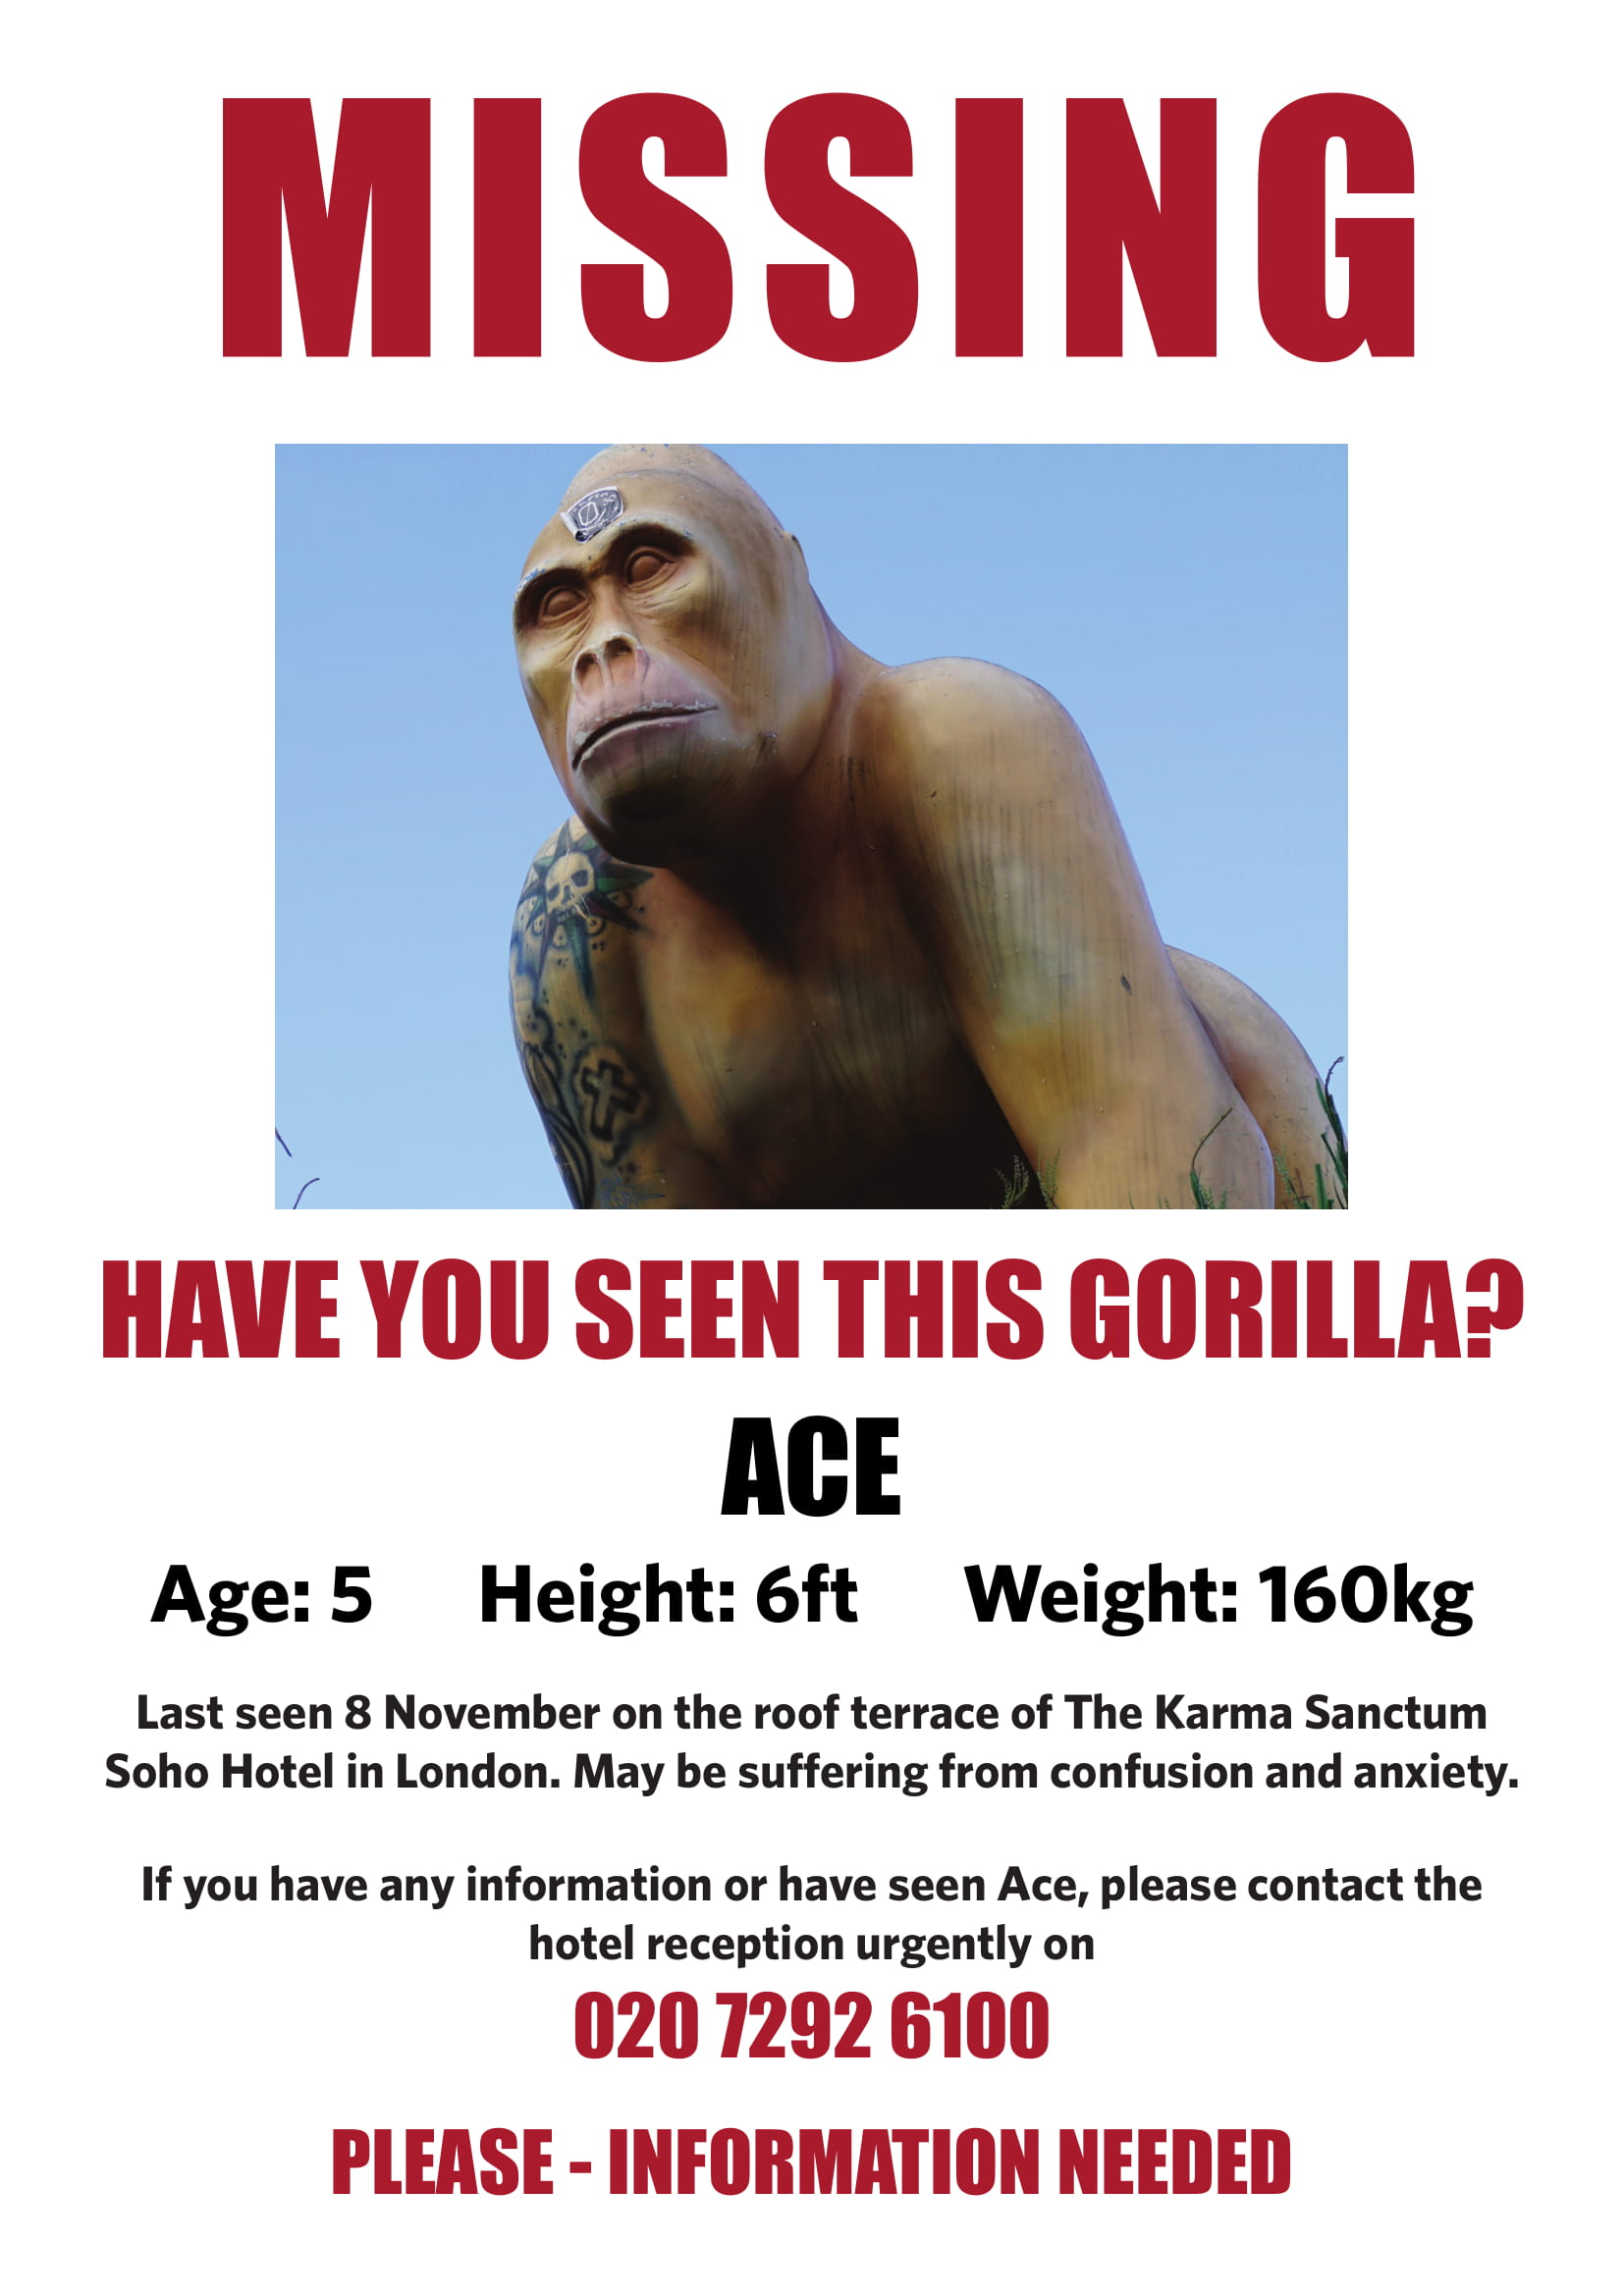 A missing posted for the gorilla statue